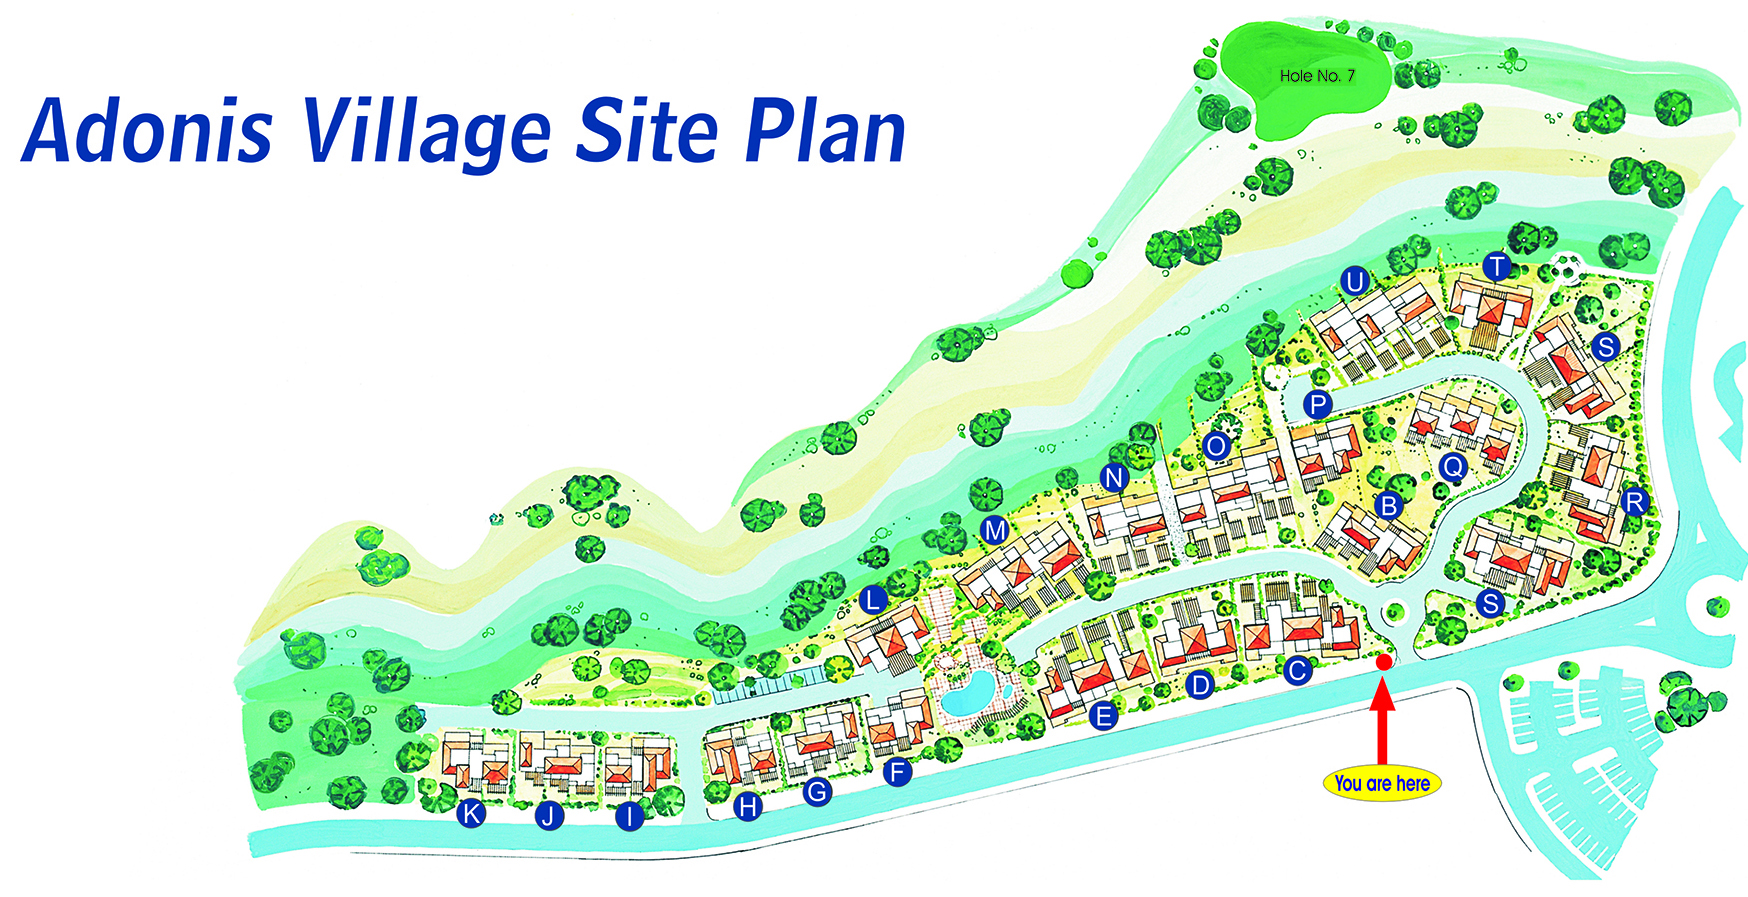 Adonis Village SIte Plan